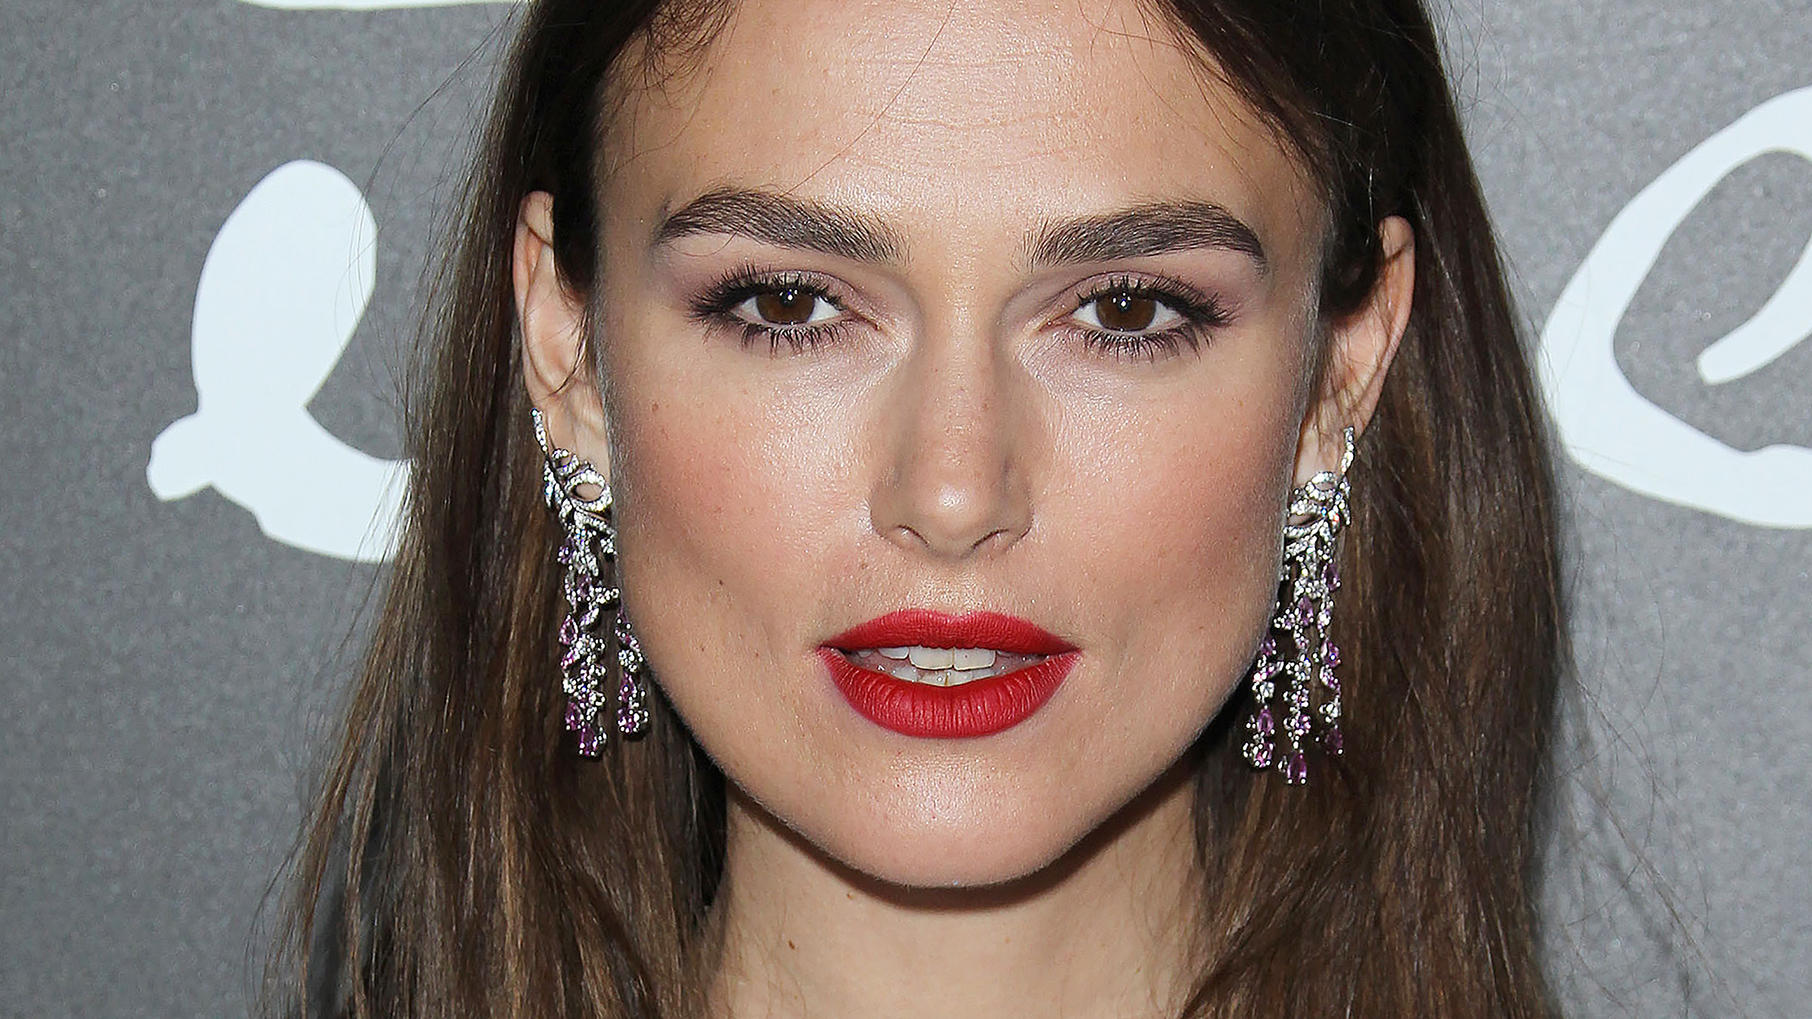 Actress Keira Knightley attends the Colette Premiere in Los Angeles, CAPictured: Keira KnightleyRef: SPL5024772 140918 NON-EXCLUSIVEPicture by: SplashNews.comSplash News and PicturesLos Angeles: 310-821-2666New York: 212-619-2666London: 0207 644 7656